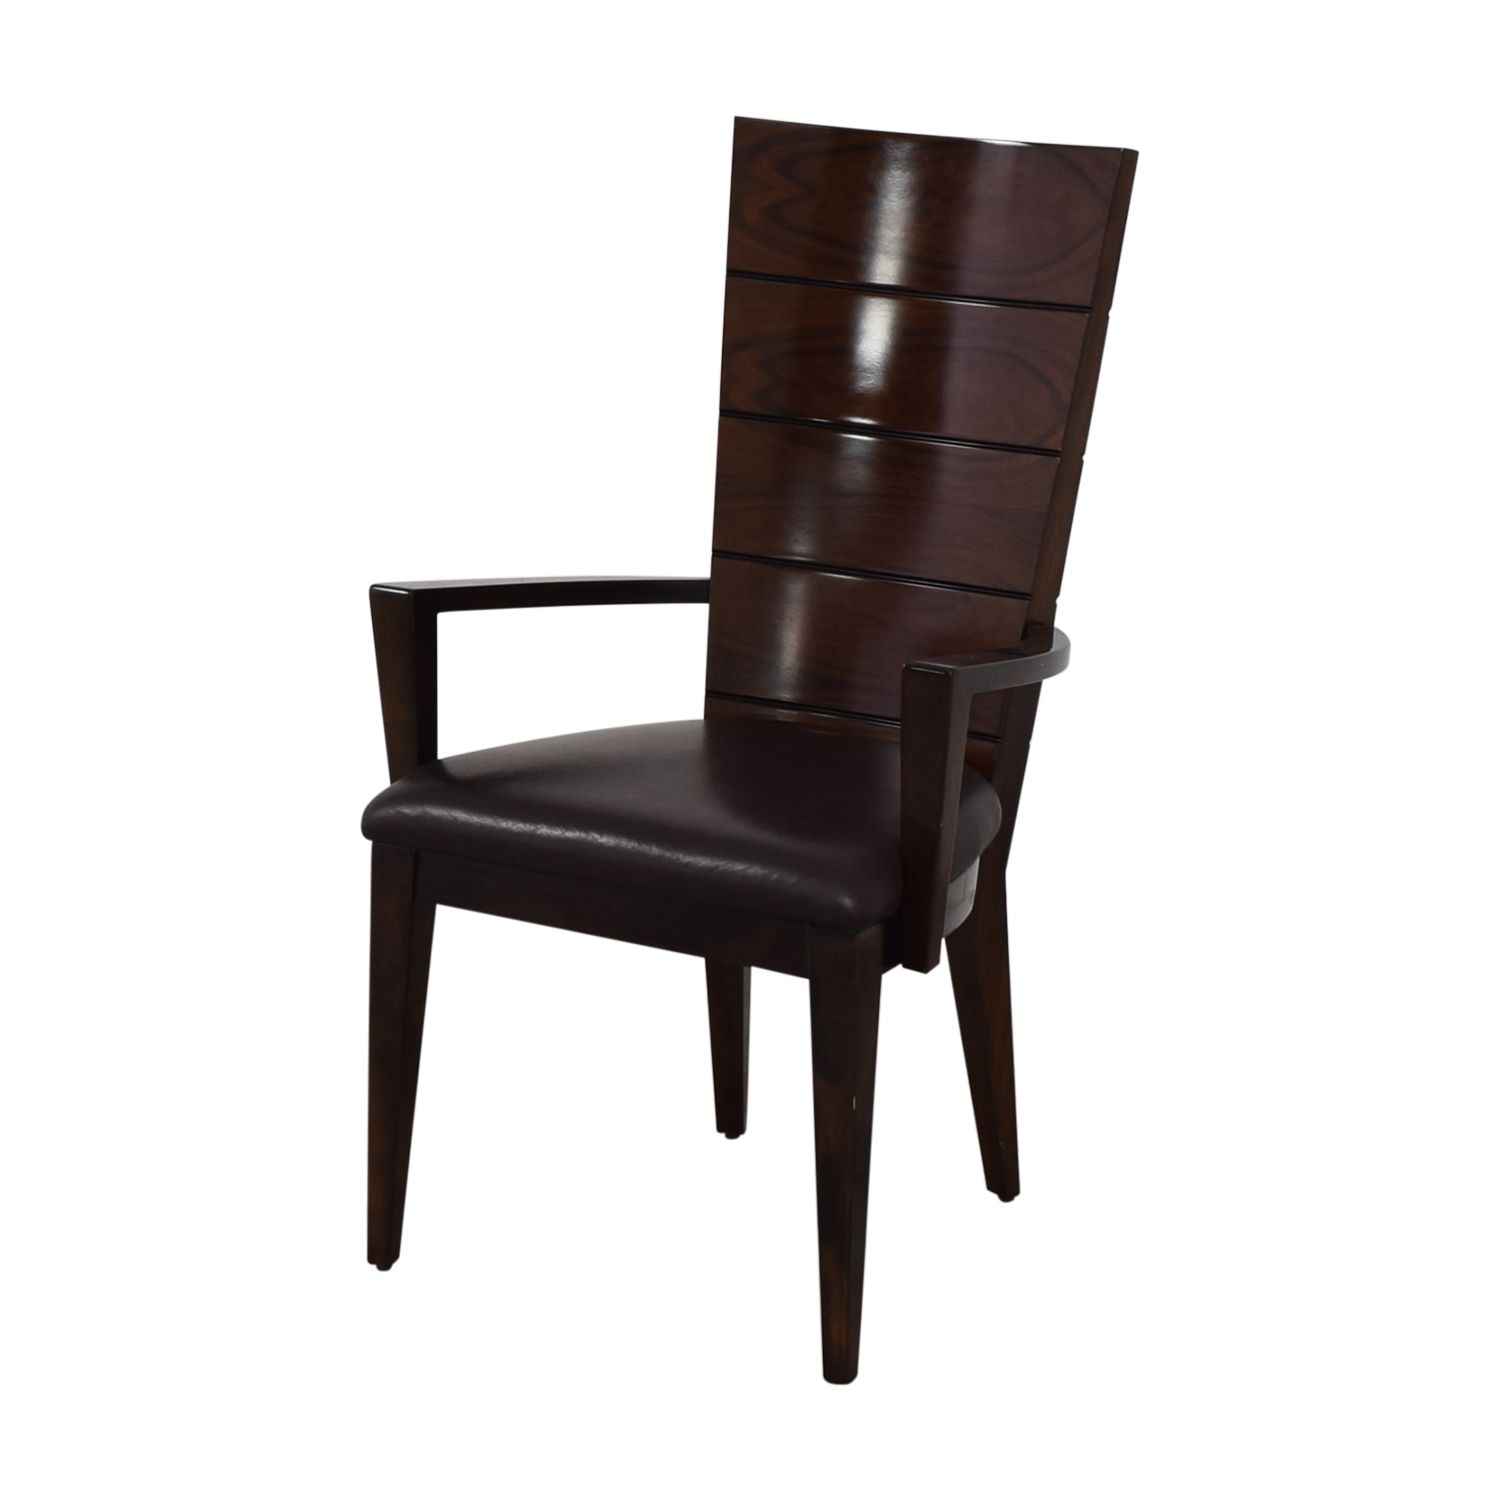 High Gloss Wood and Leather Chair Elio